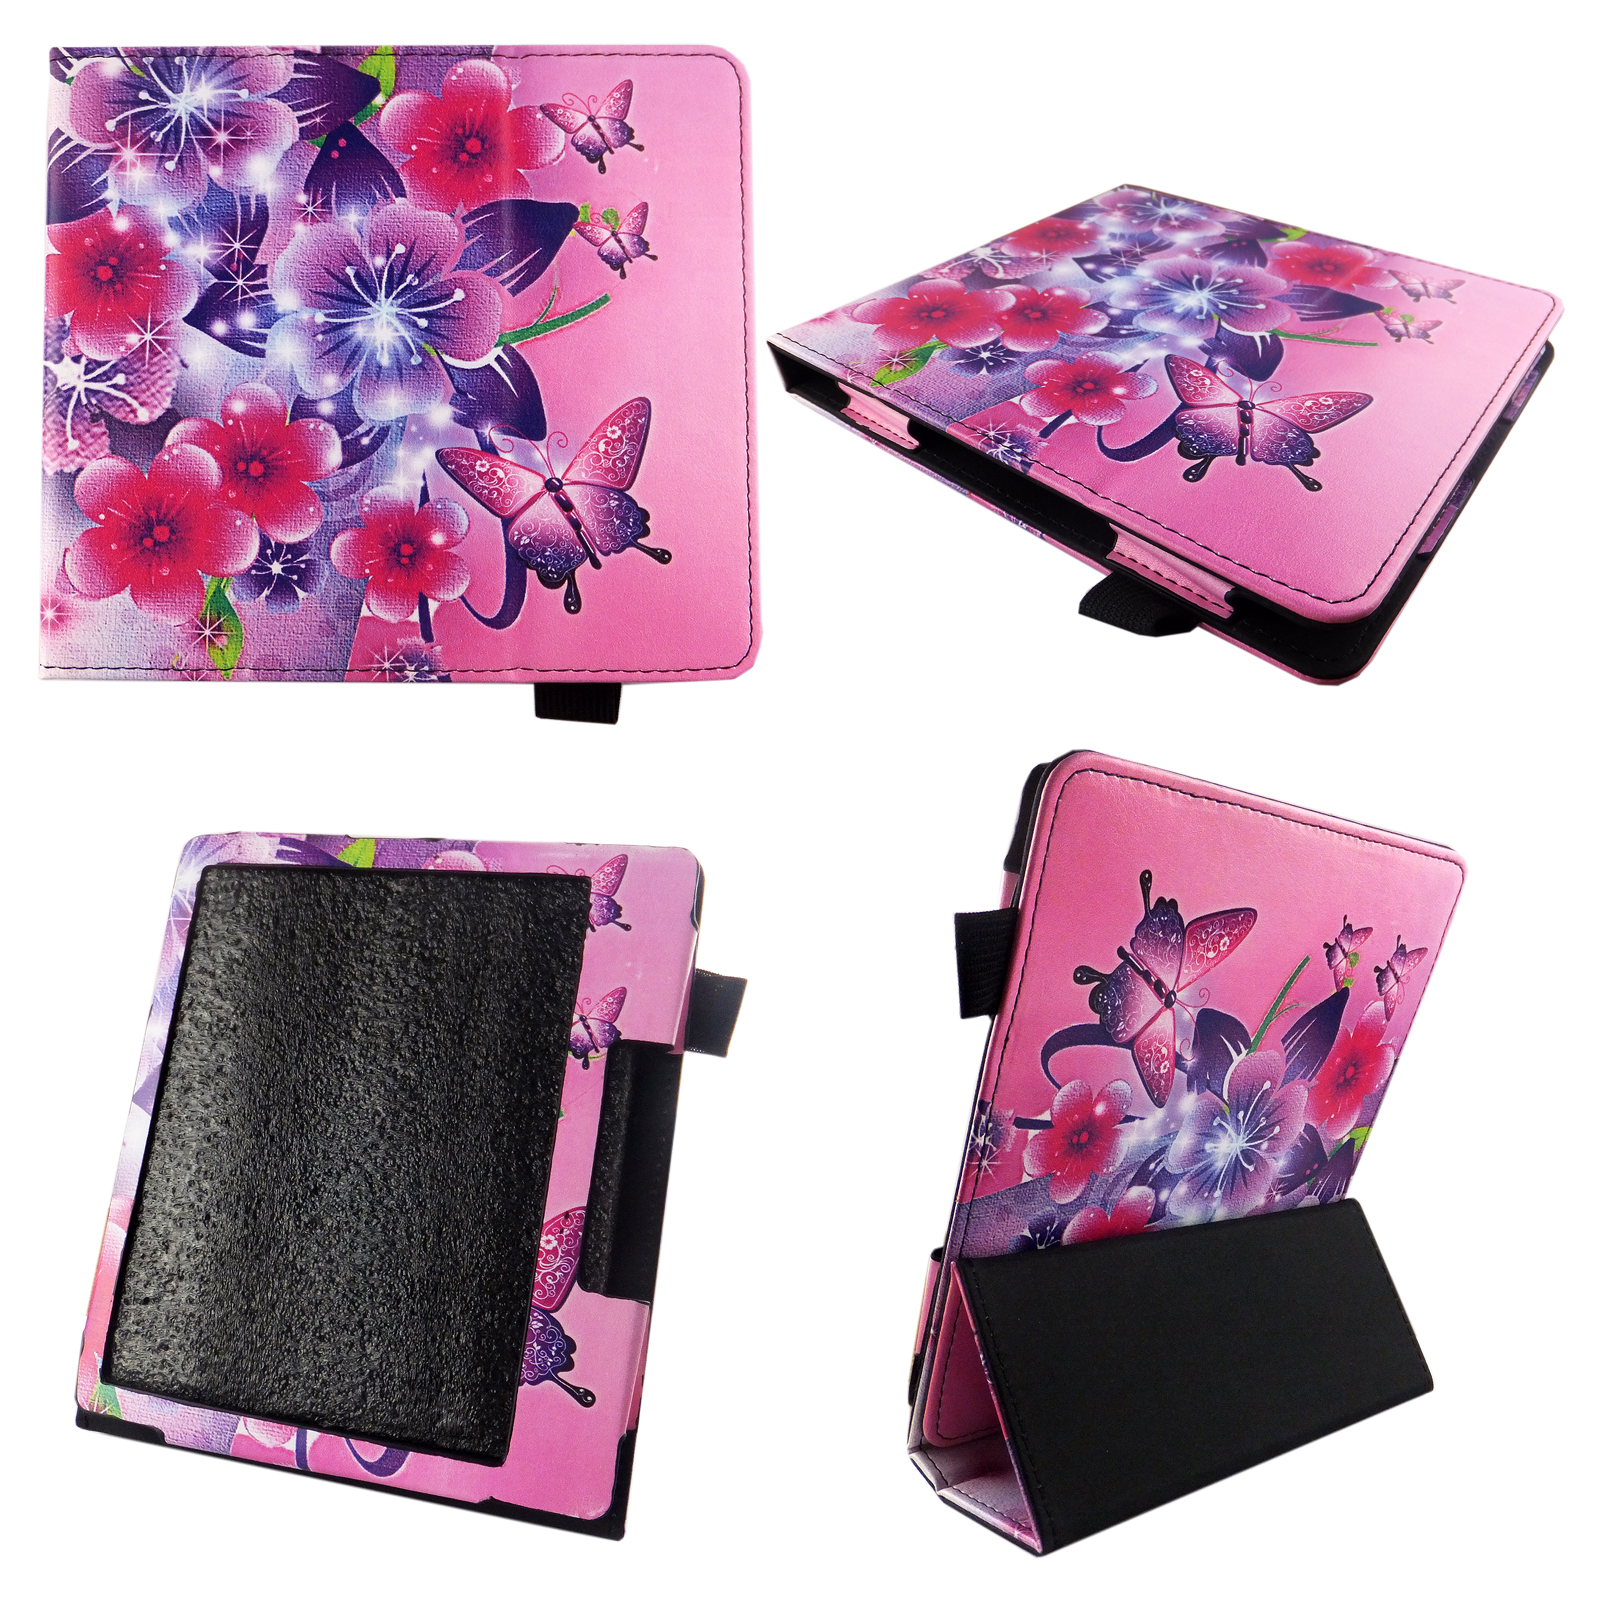 Butterfly Flower Pink Case For All-New Kindle Oasis 7 Inch